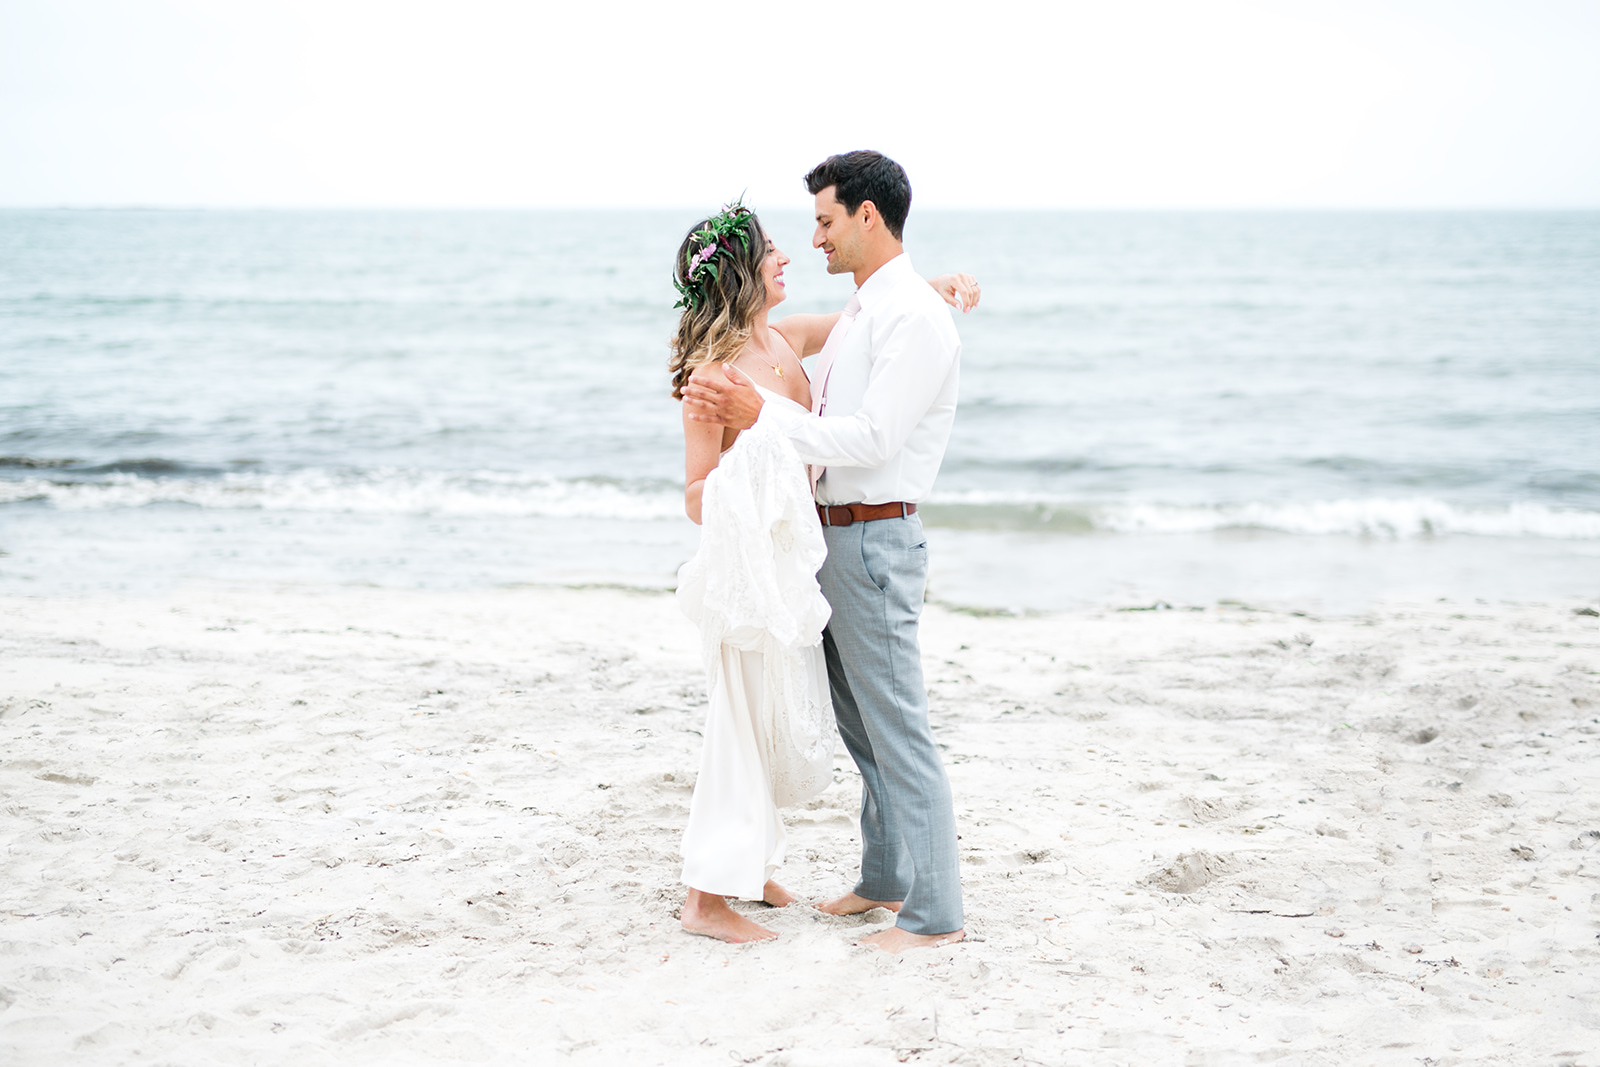 First look by the ocean - Pearl Weddings & Events